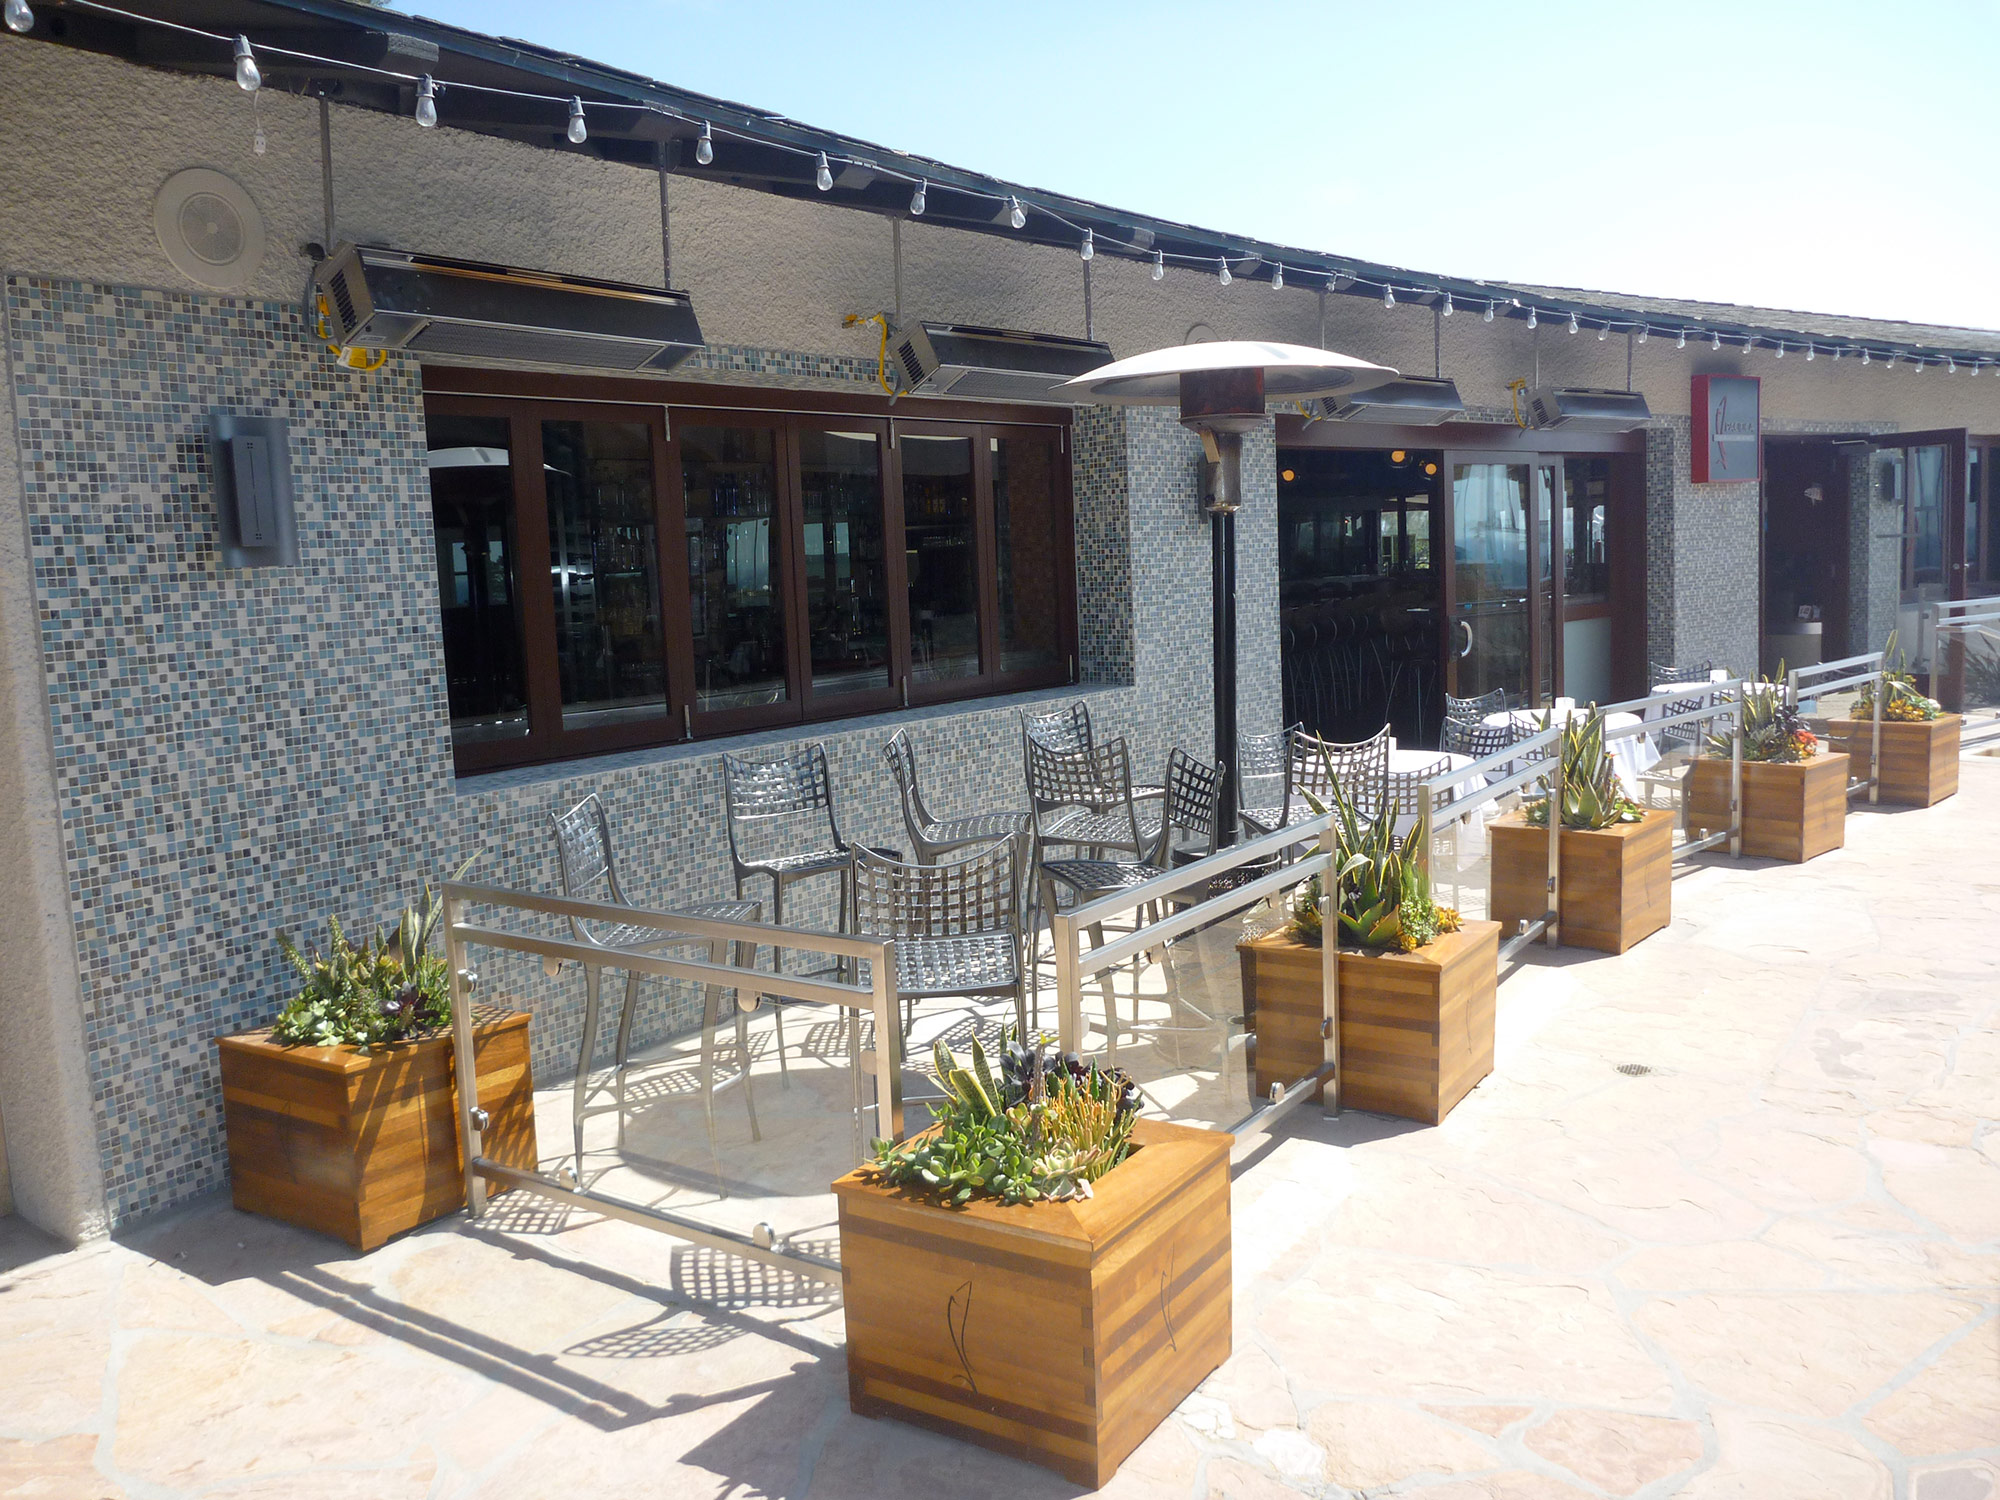 01-Pacifica-Del-Mar-Oyster-Bar.jpg